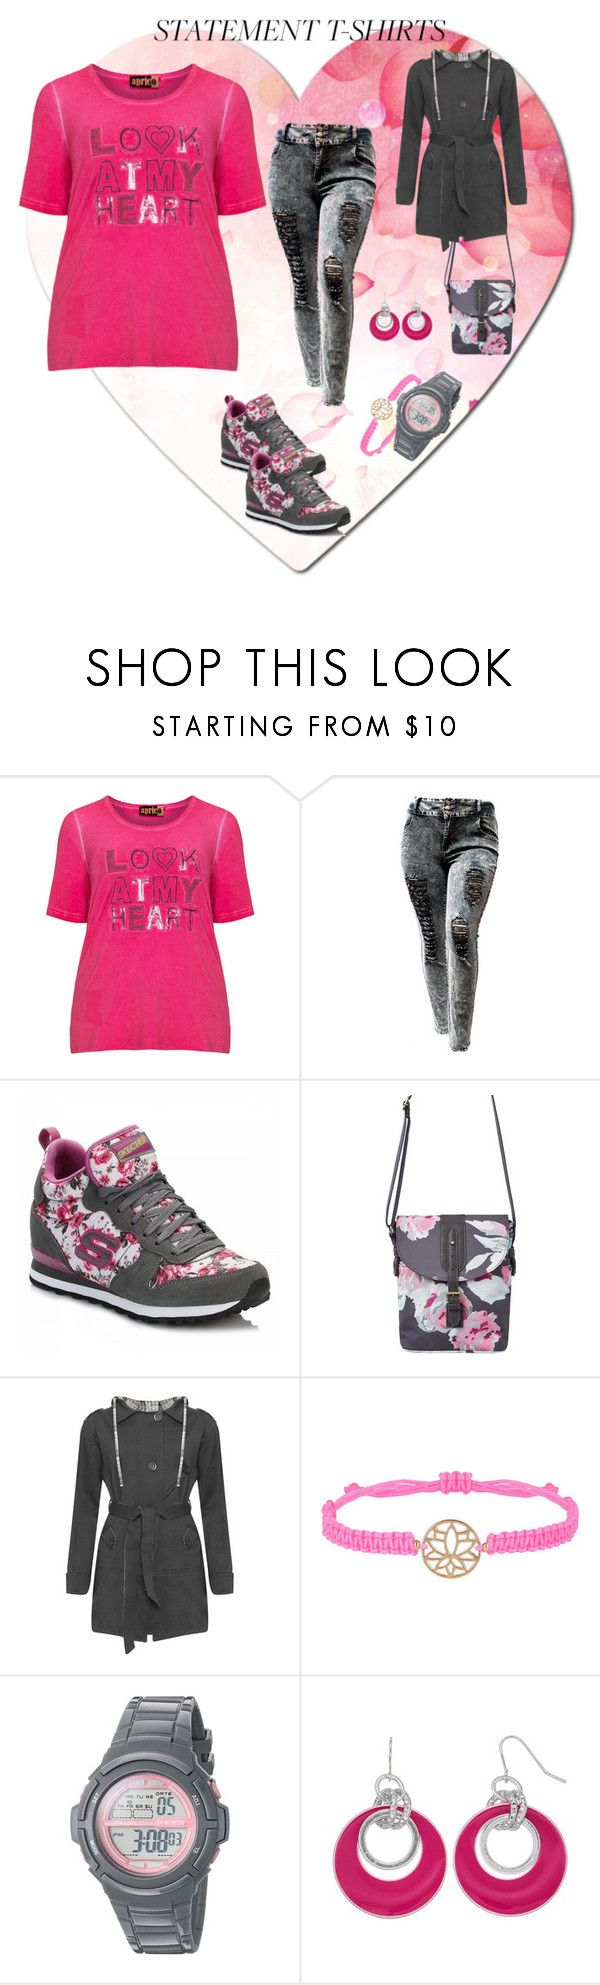 """""""Say What: Statement T-Shirts"""" by miriam-witte ❤ liked on Polyvore featuring aprico, Skechers, Joules, WearAll and Accessorize"""